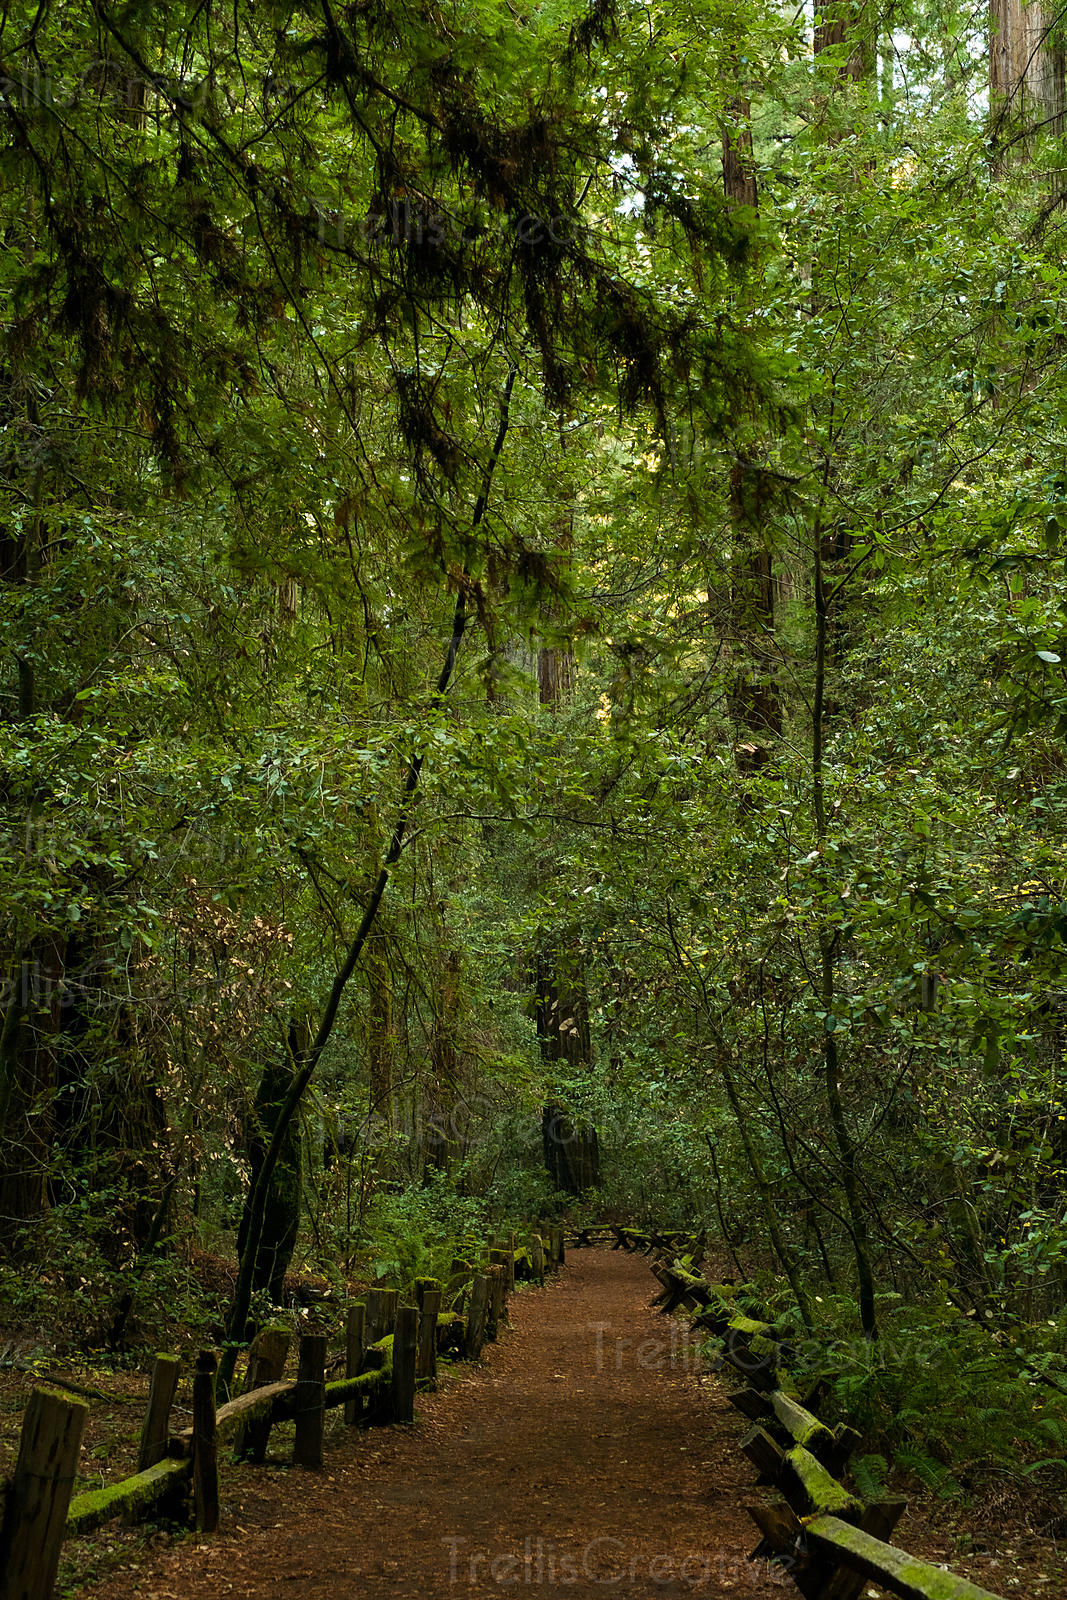 A hiking trail through the dense Redwood forest